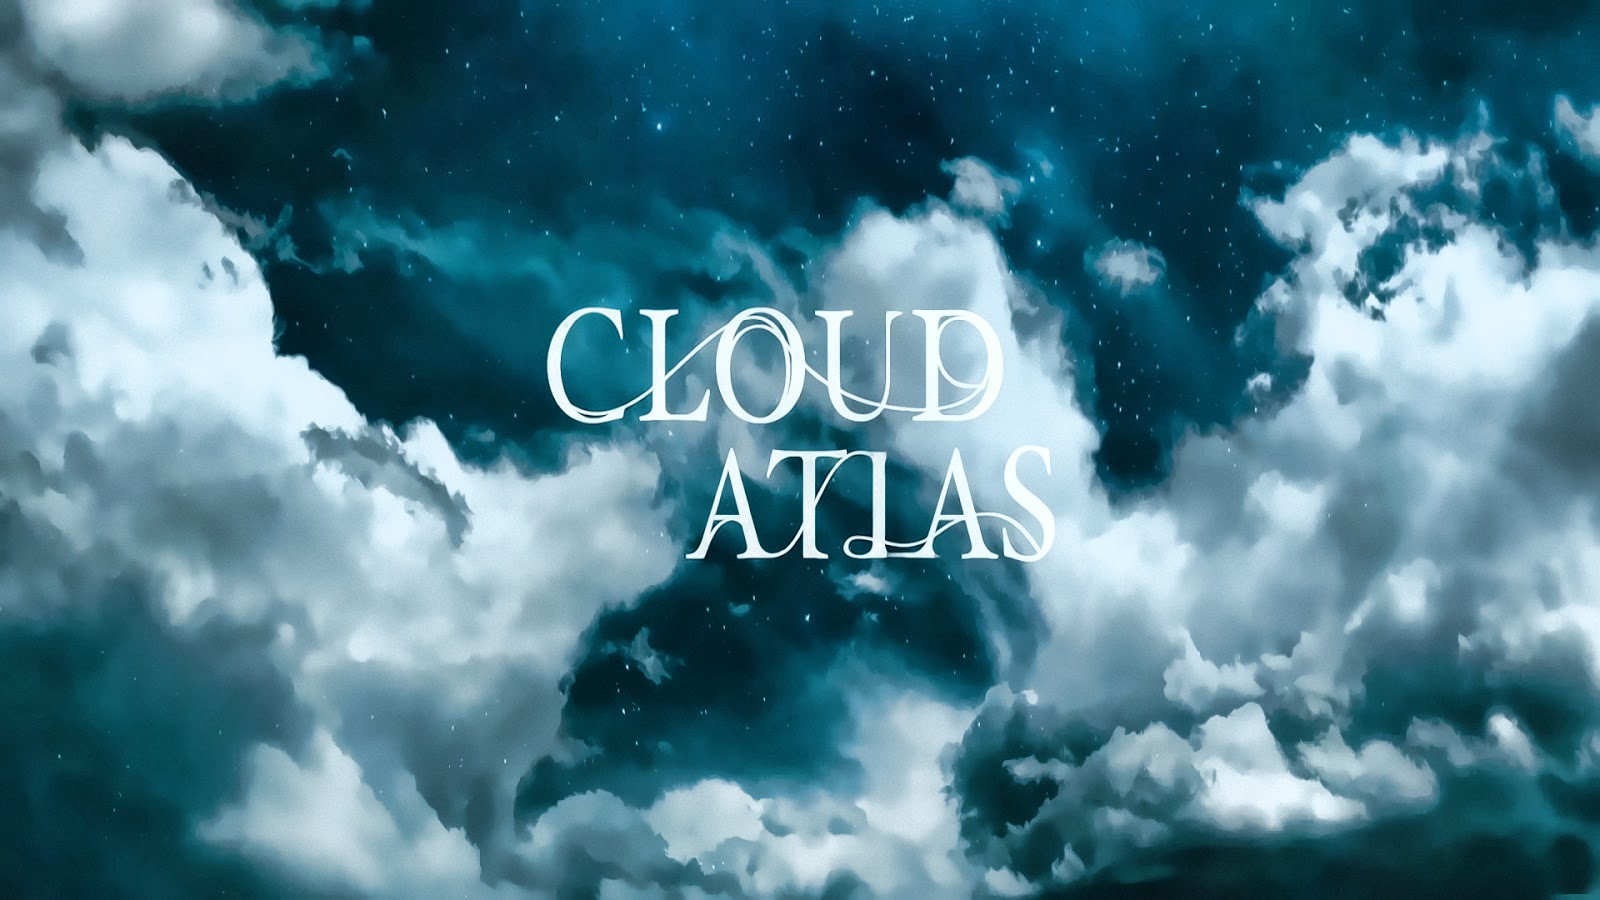 Powerpoint templates of the new sci fi movie cloud atlas as usual i collect some wallpapers of the film and post them here these wallpapers can also be used as powerpoint backgrounds or templates enjoy toneelgroepblik Gallery